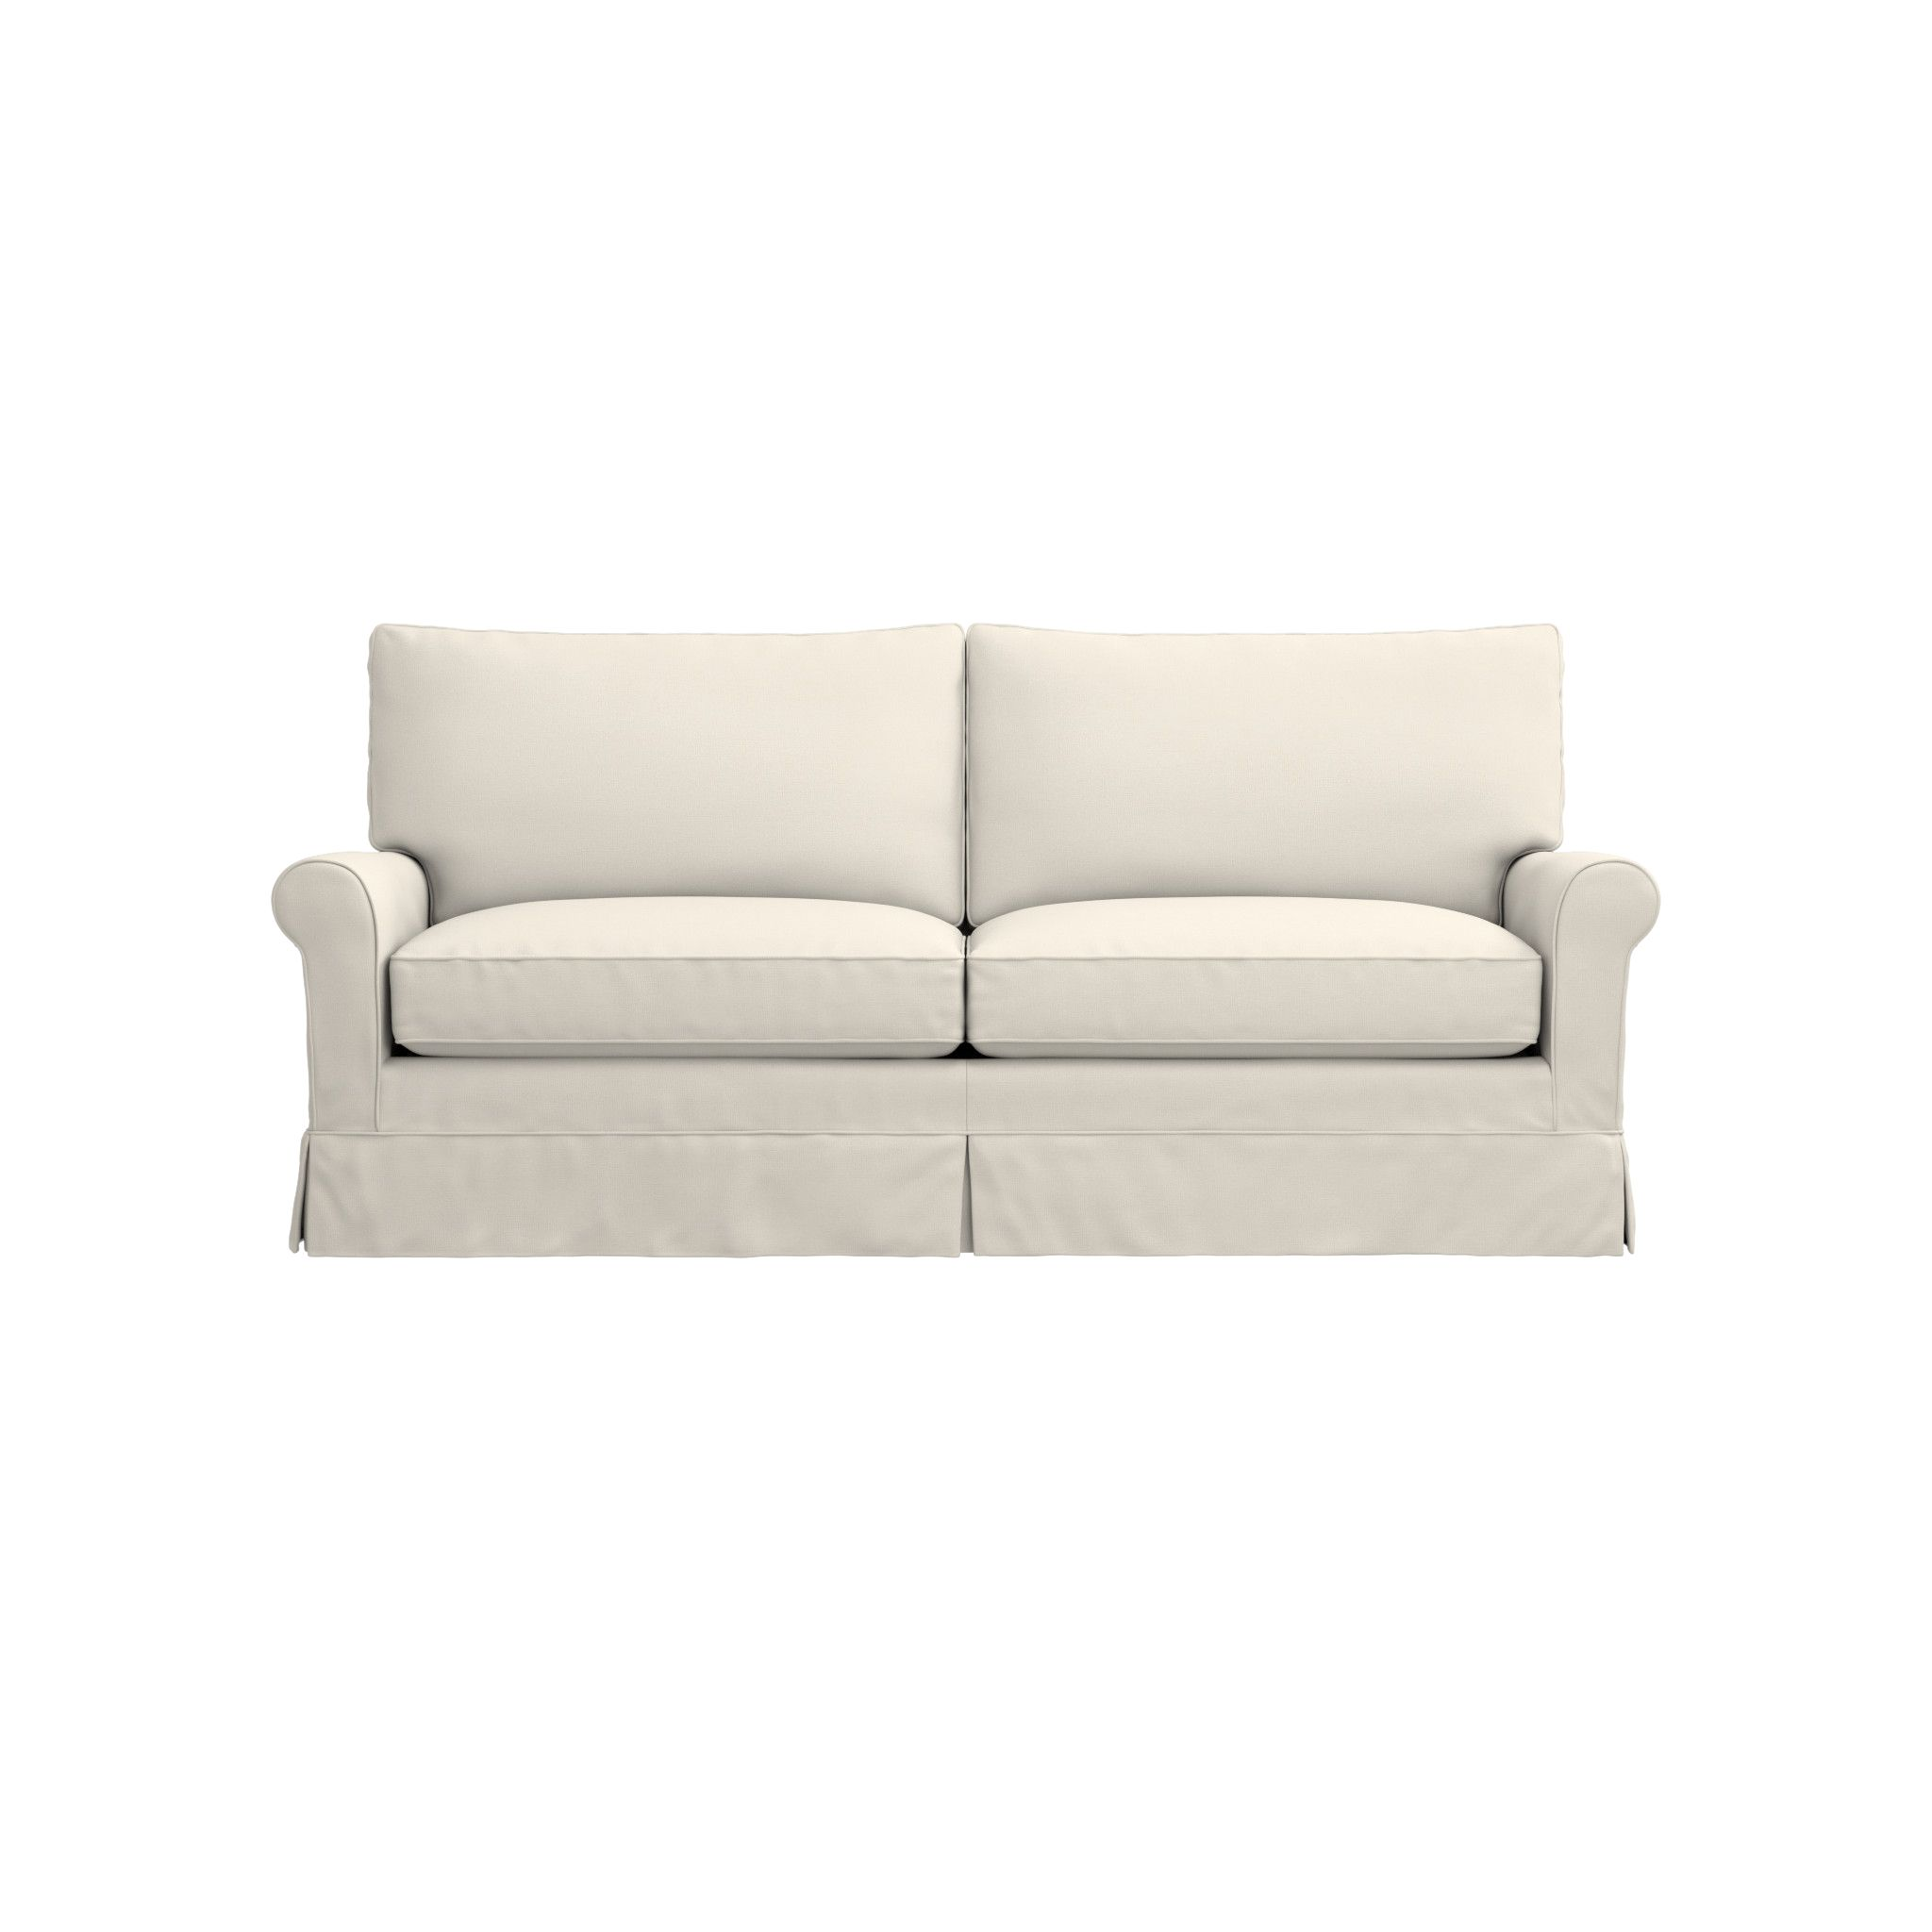 Crate and Barrel Couch | Crate and Barrel Cameron | Crate & Barrel Sofa